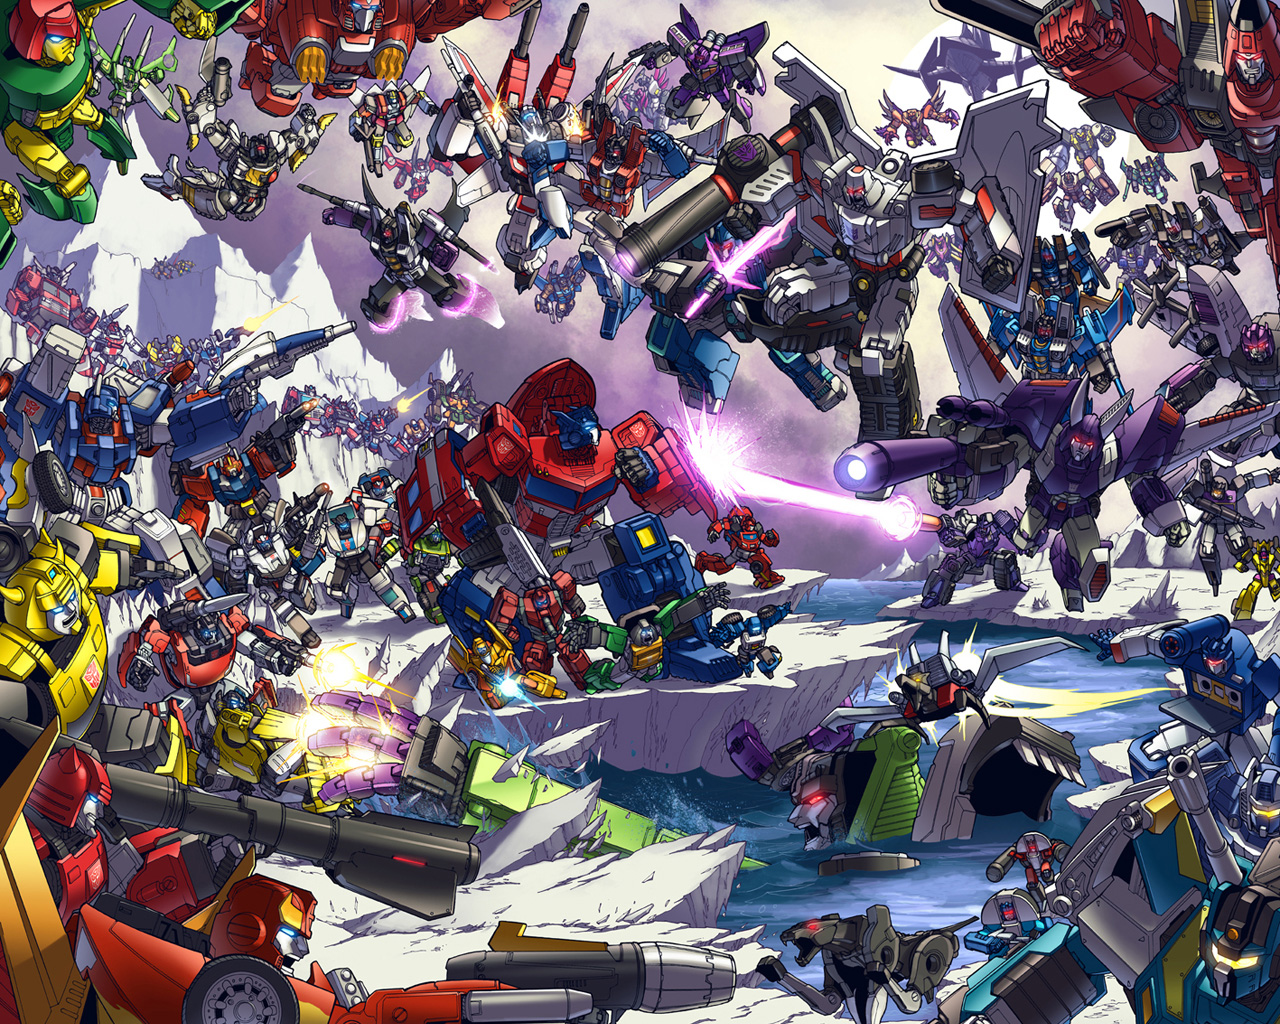 G1 transformers wallpaper hd wallpapersafari - Transformers desktop backgrounds ...